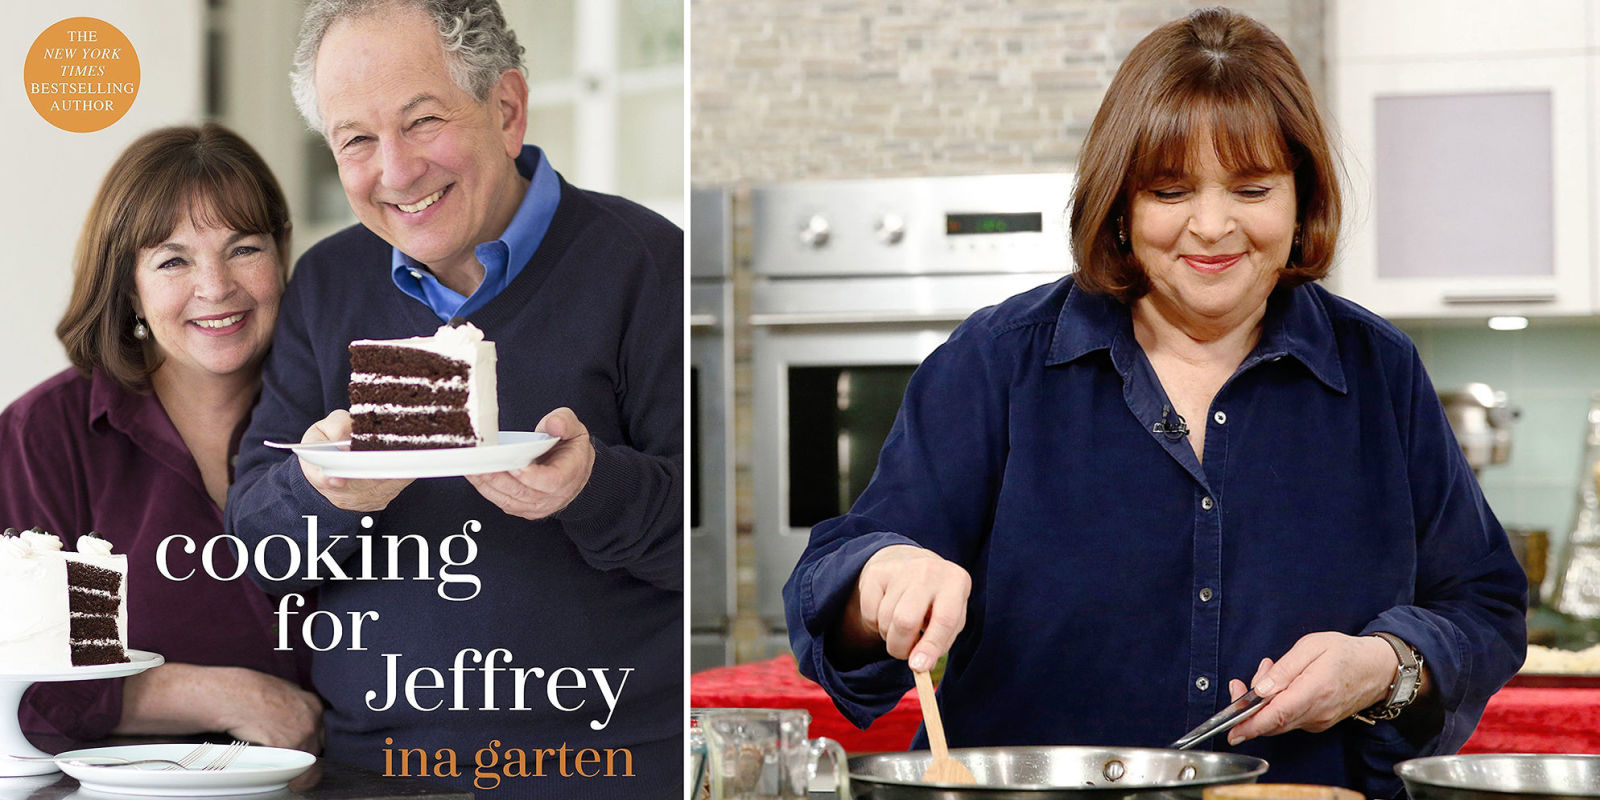 Barefoot Contessa Ina Garten S Cookbook Cooking For Jeffrey Goes